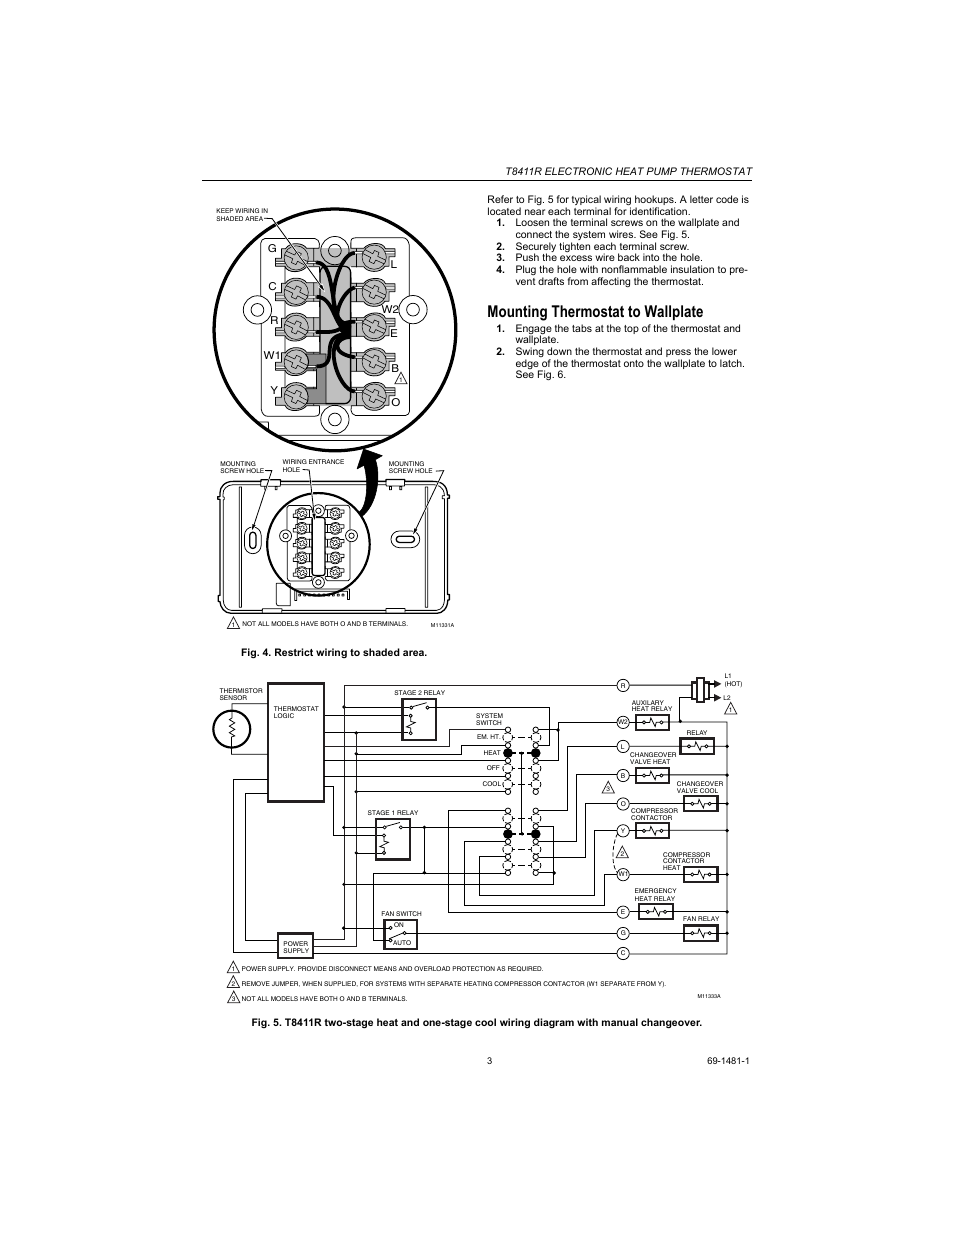 T8411r Wiring Diagram Schemes Trane Heat Pump Thermostat Colors Mounting To Wallplate Honeywell Rh Manualsdir Com Old Thermostats 5 Wire